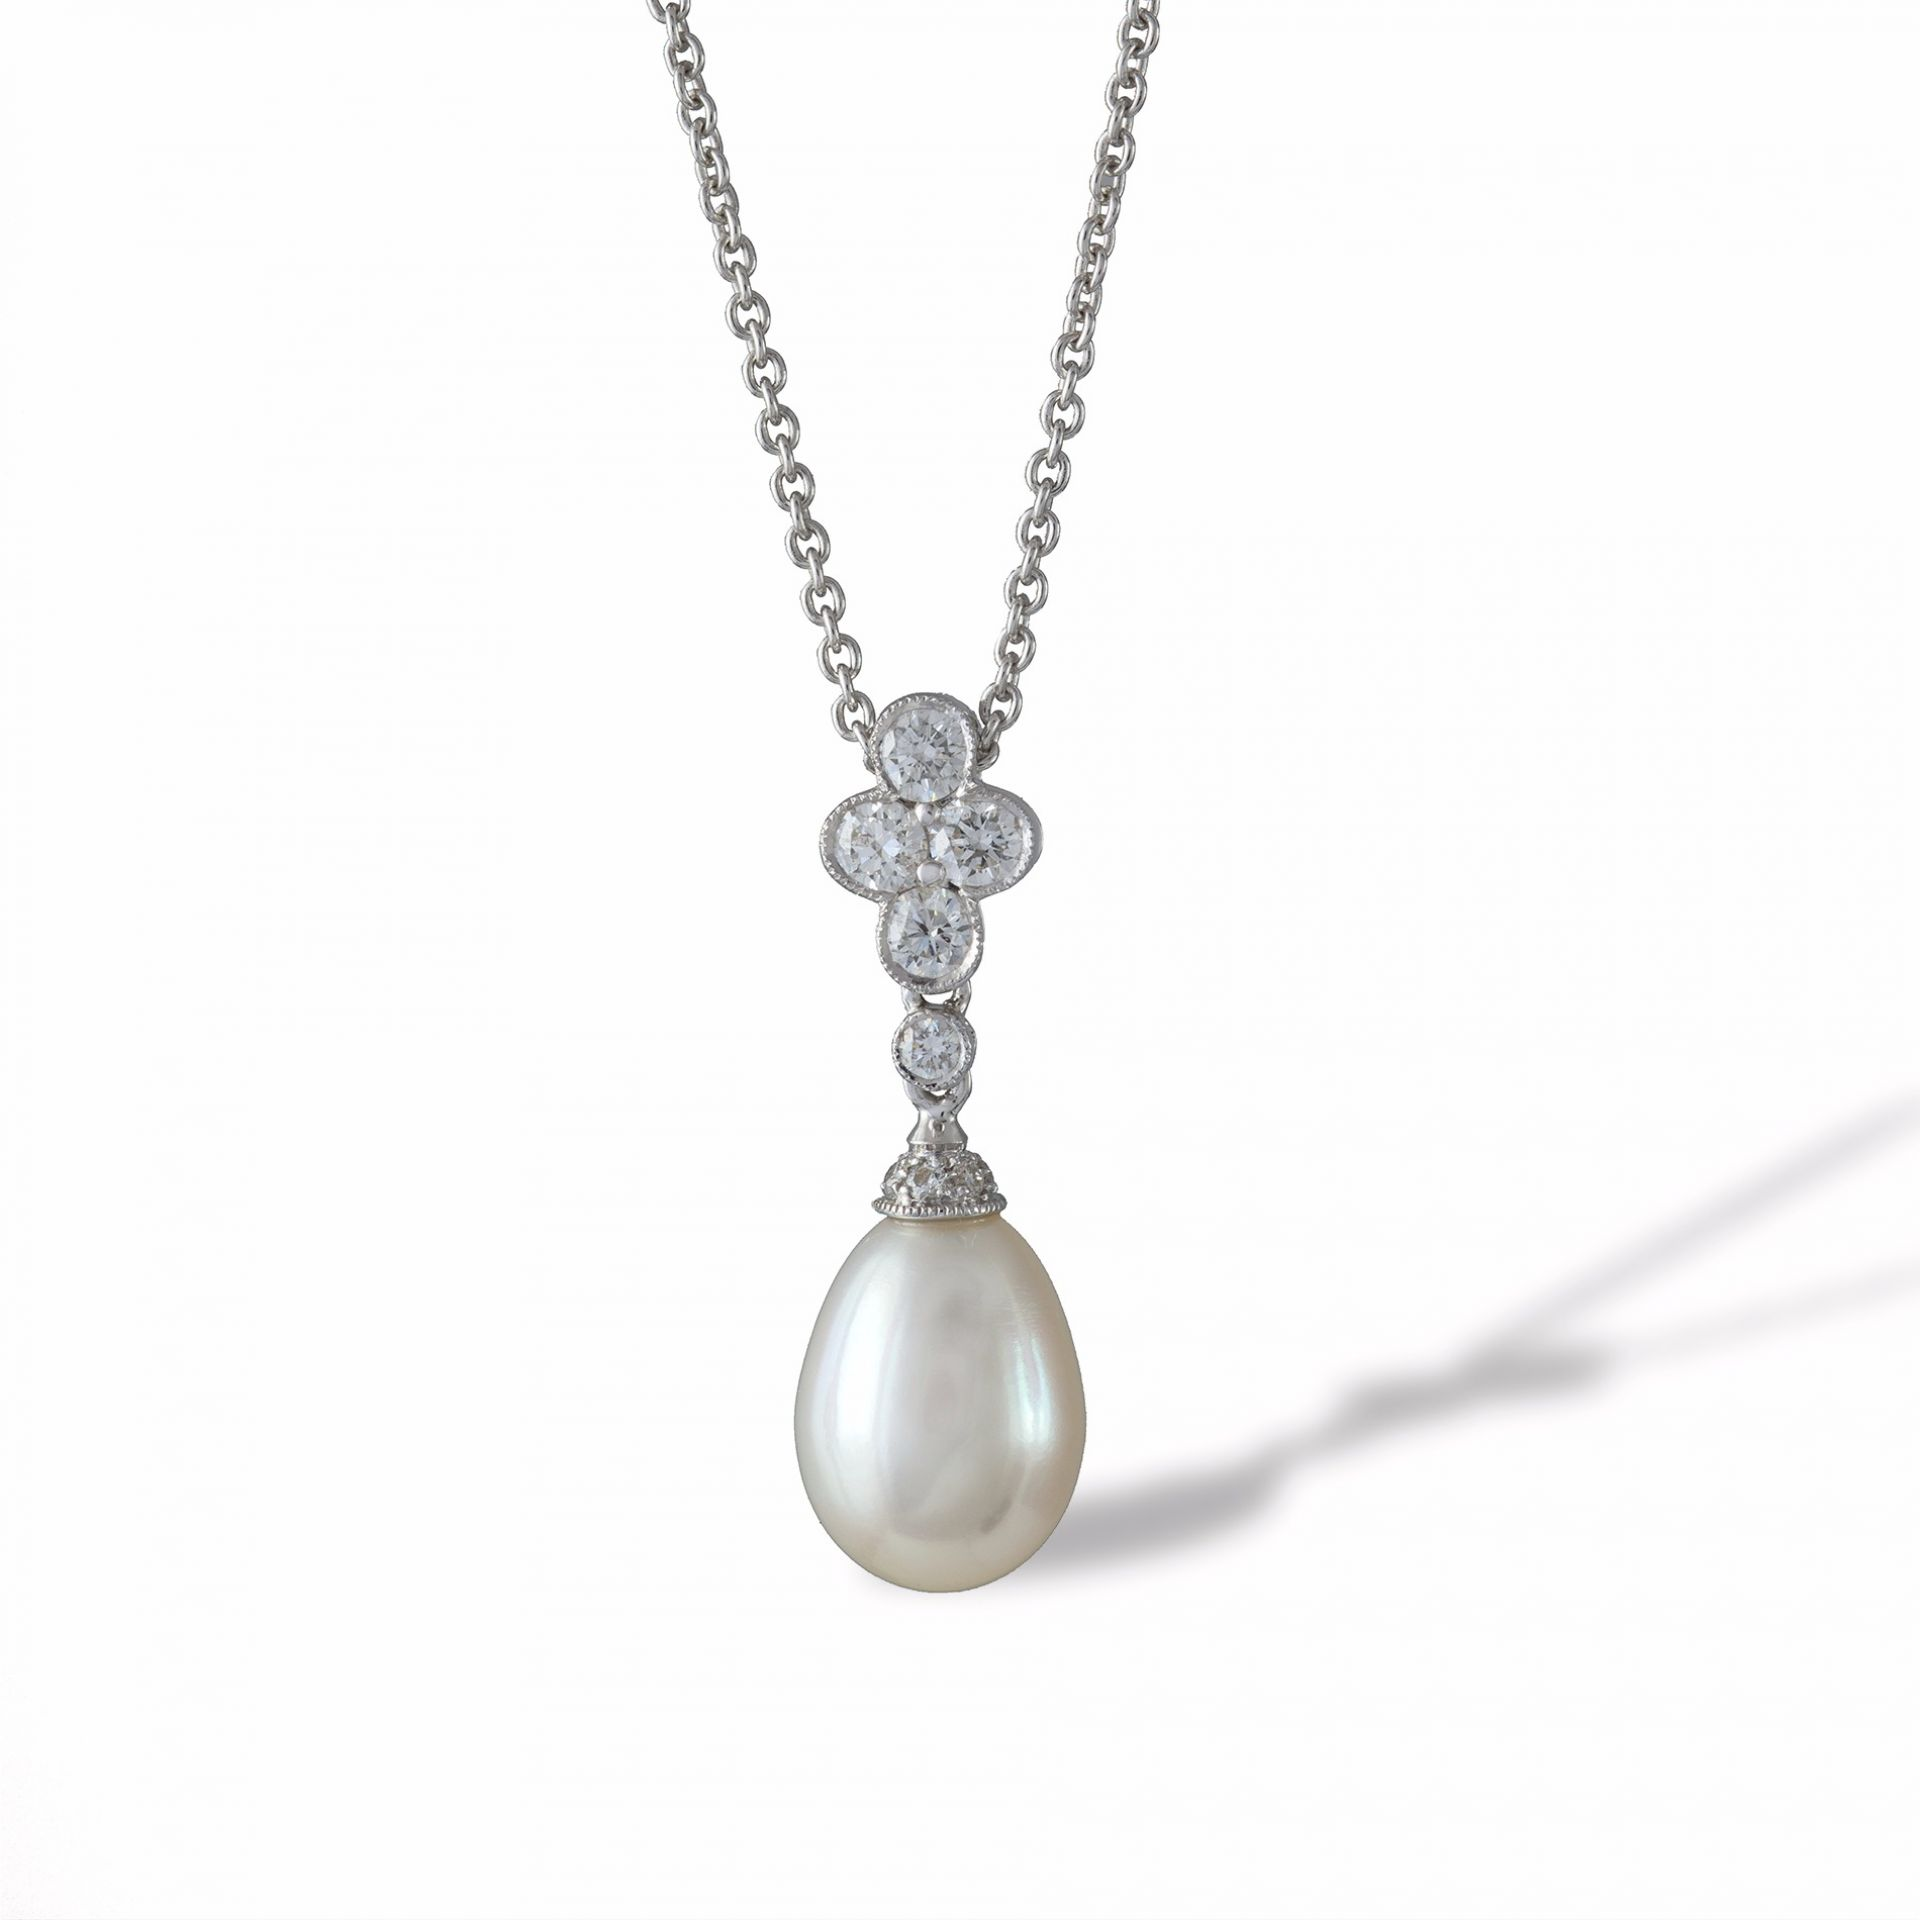 A pearl and diamond drop pendant with chain